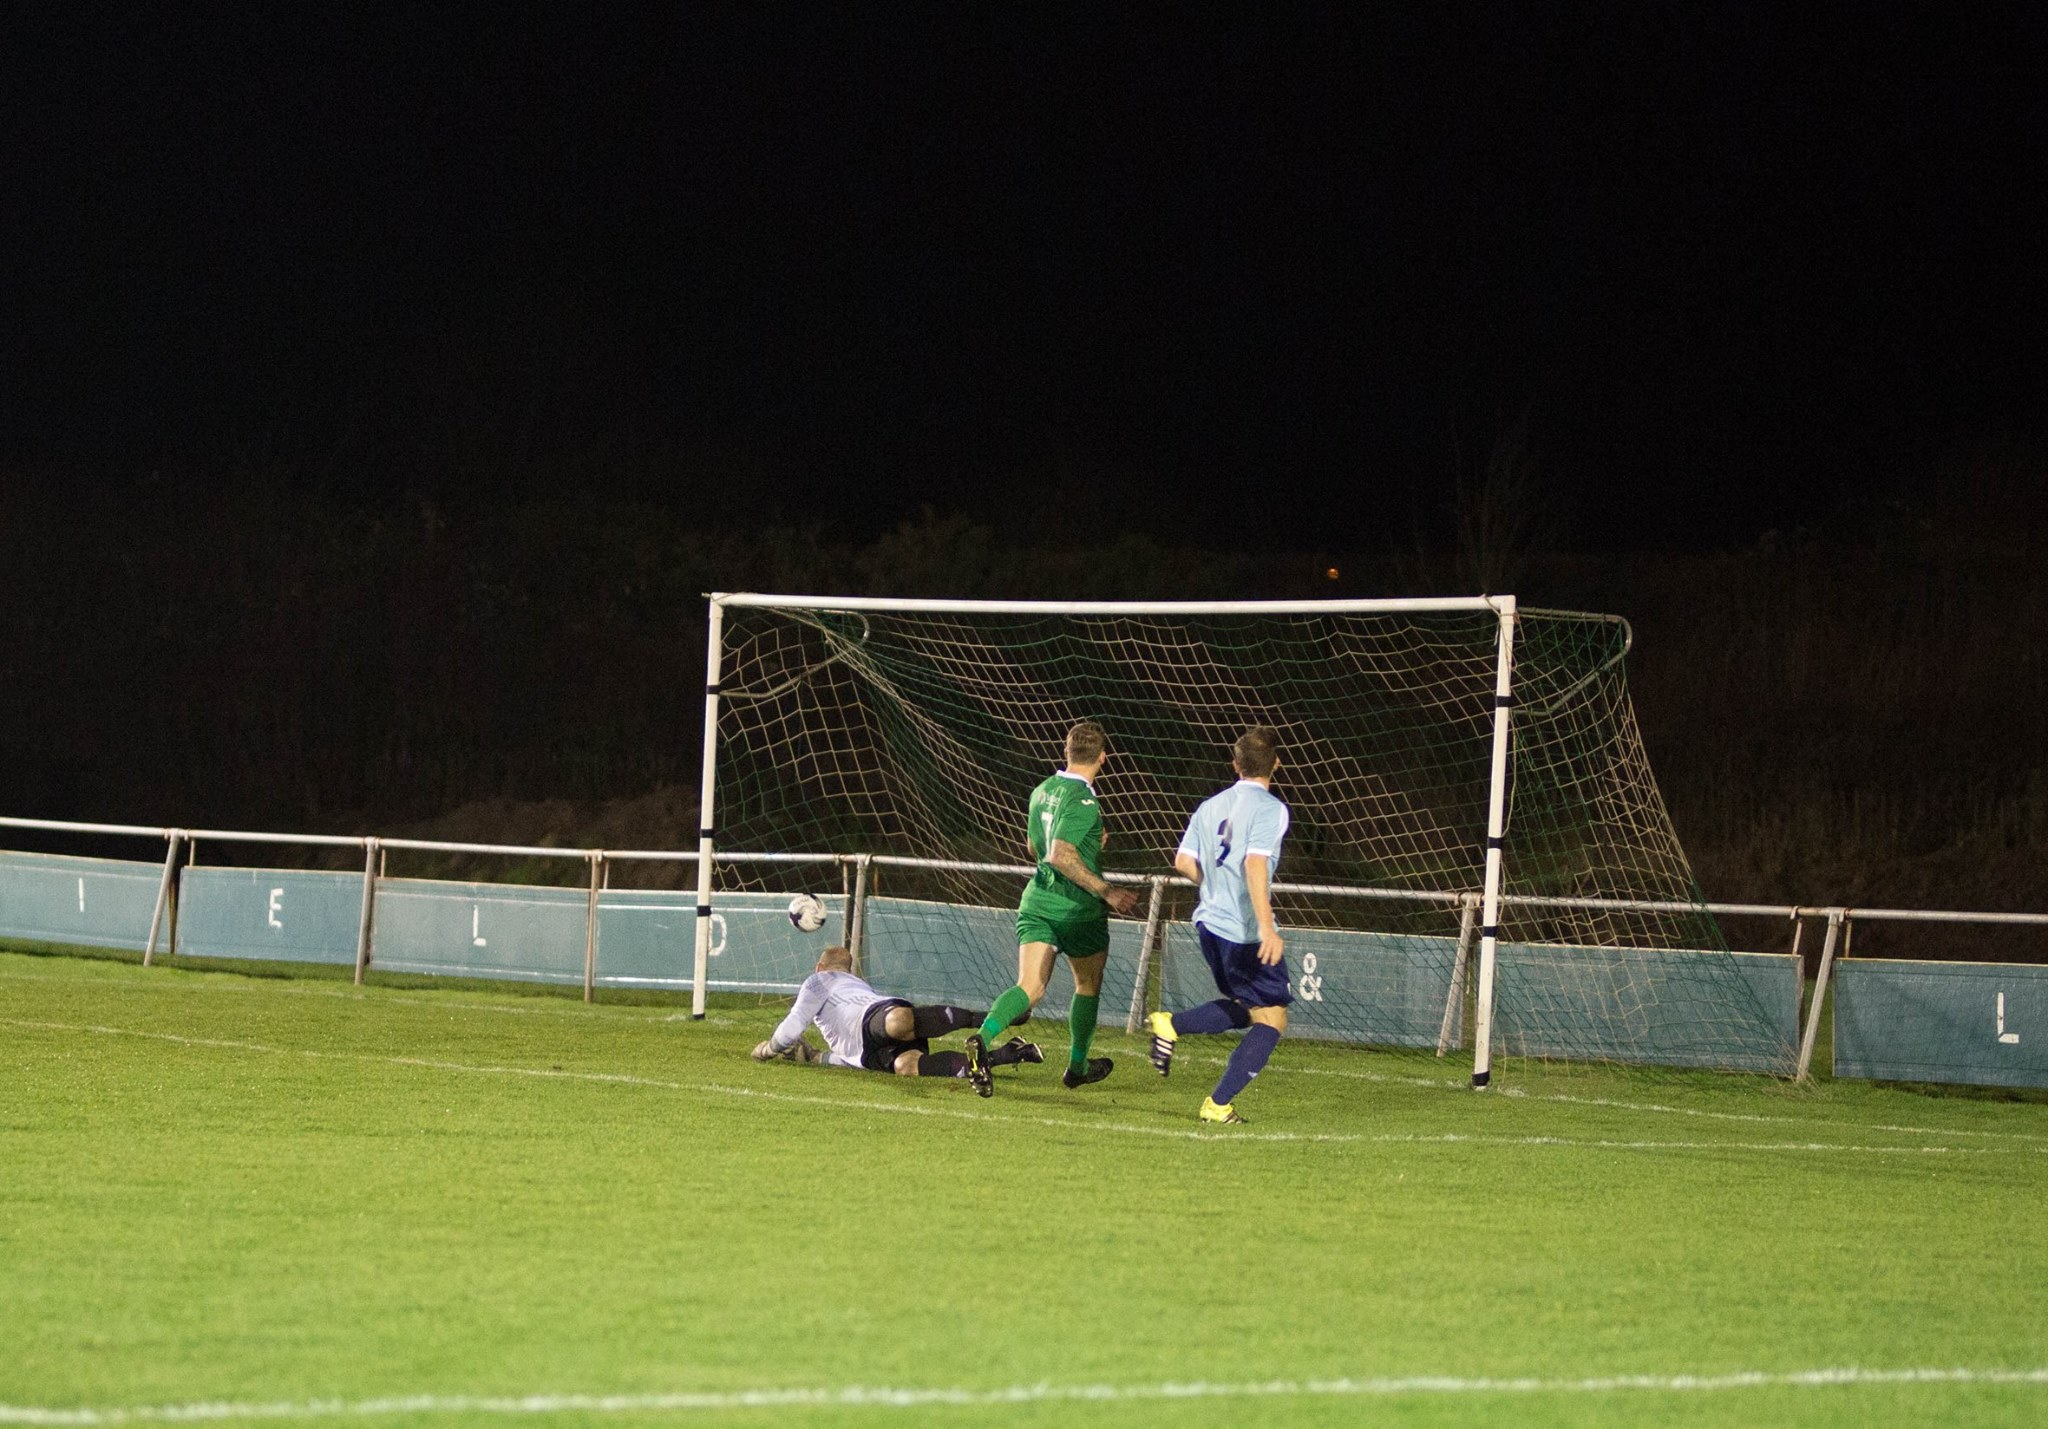 Second goal for Blackfield